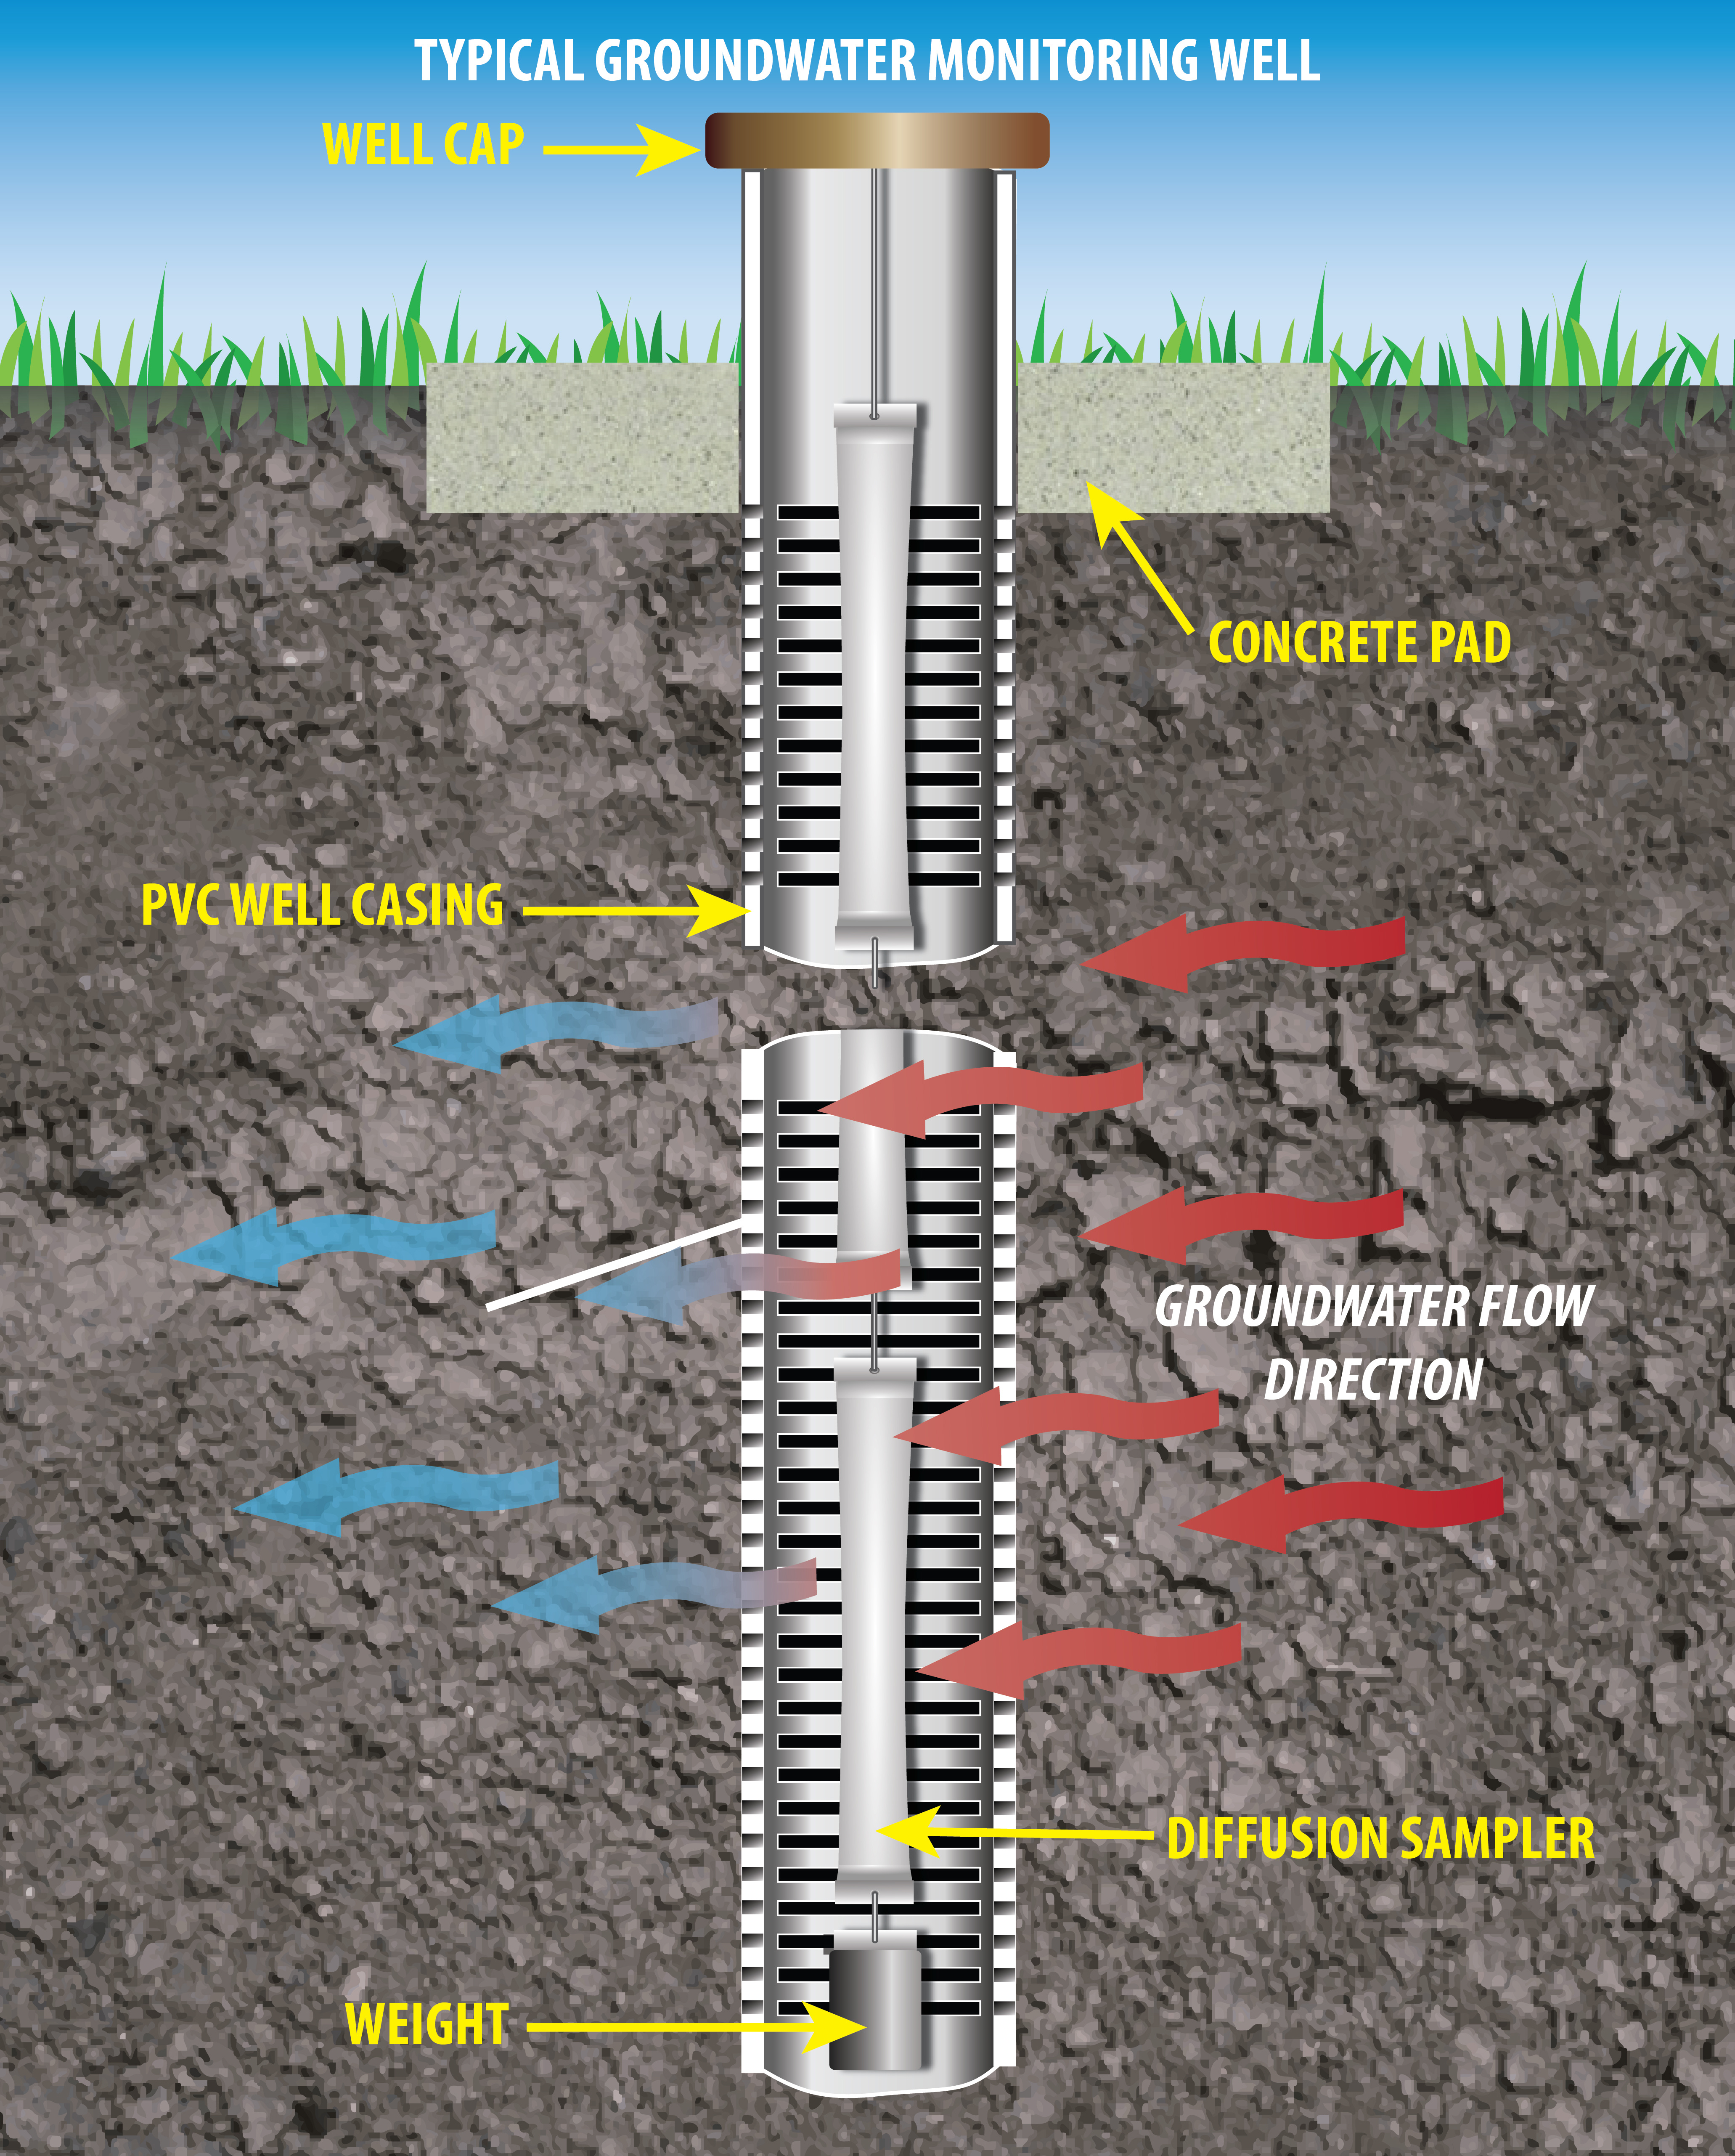 Illustration of a groundwater monitoring well showing features of the well and layers of earth